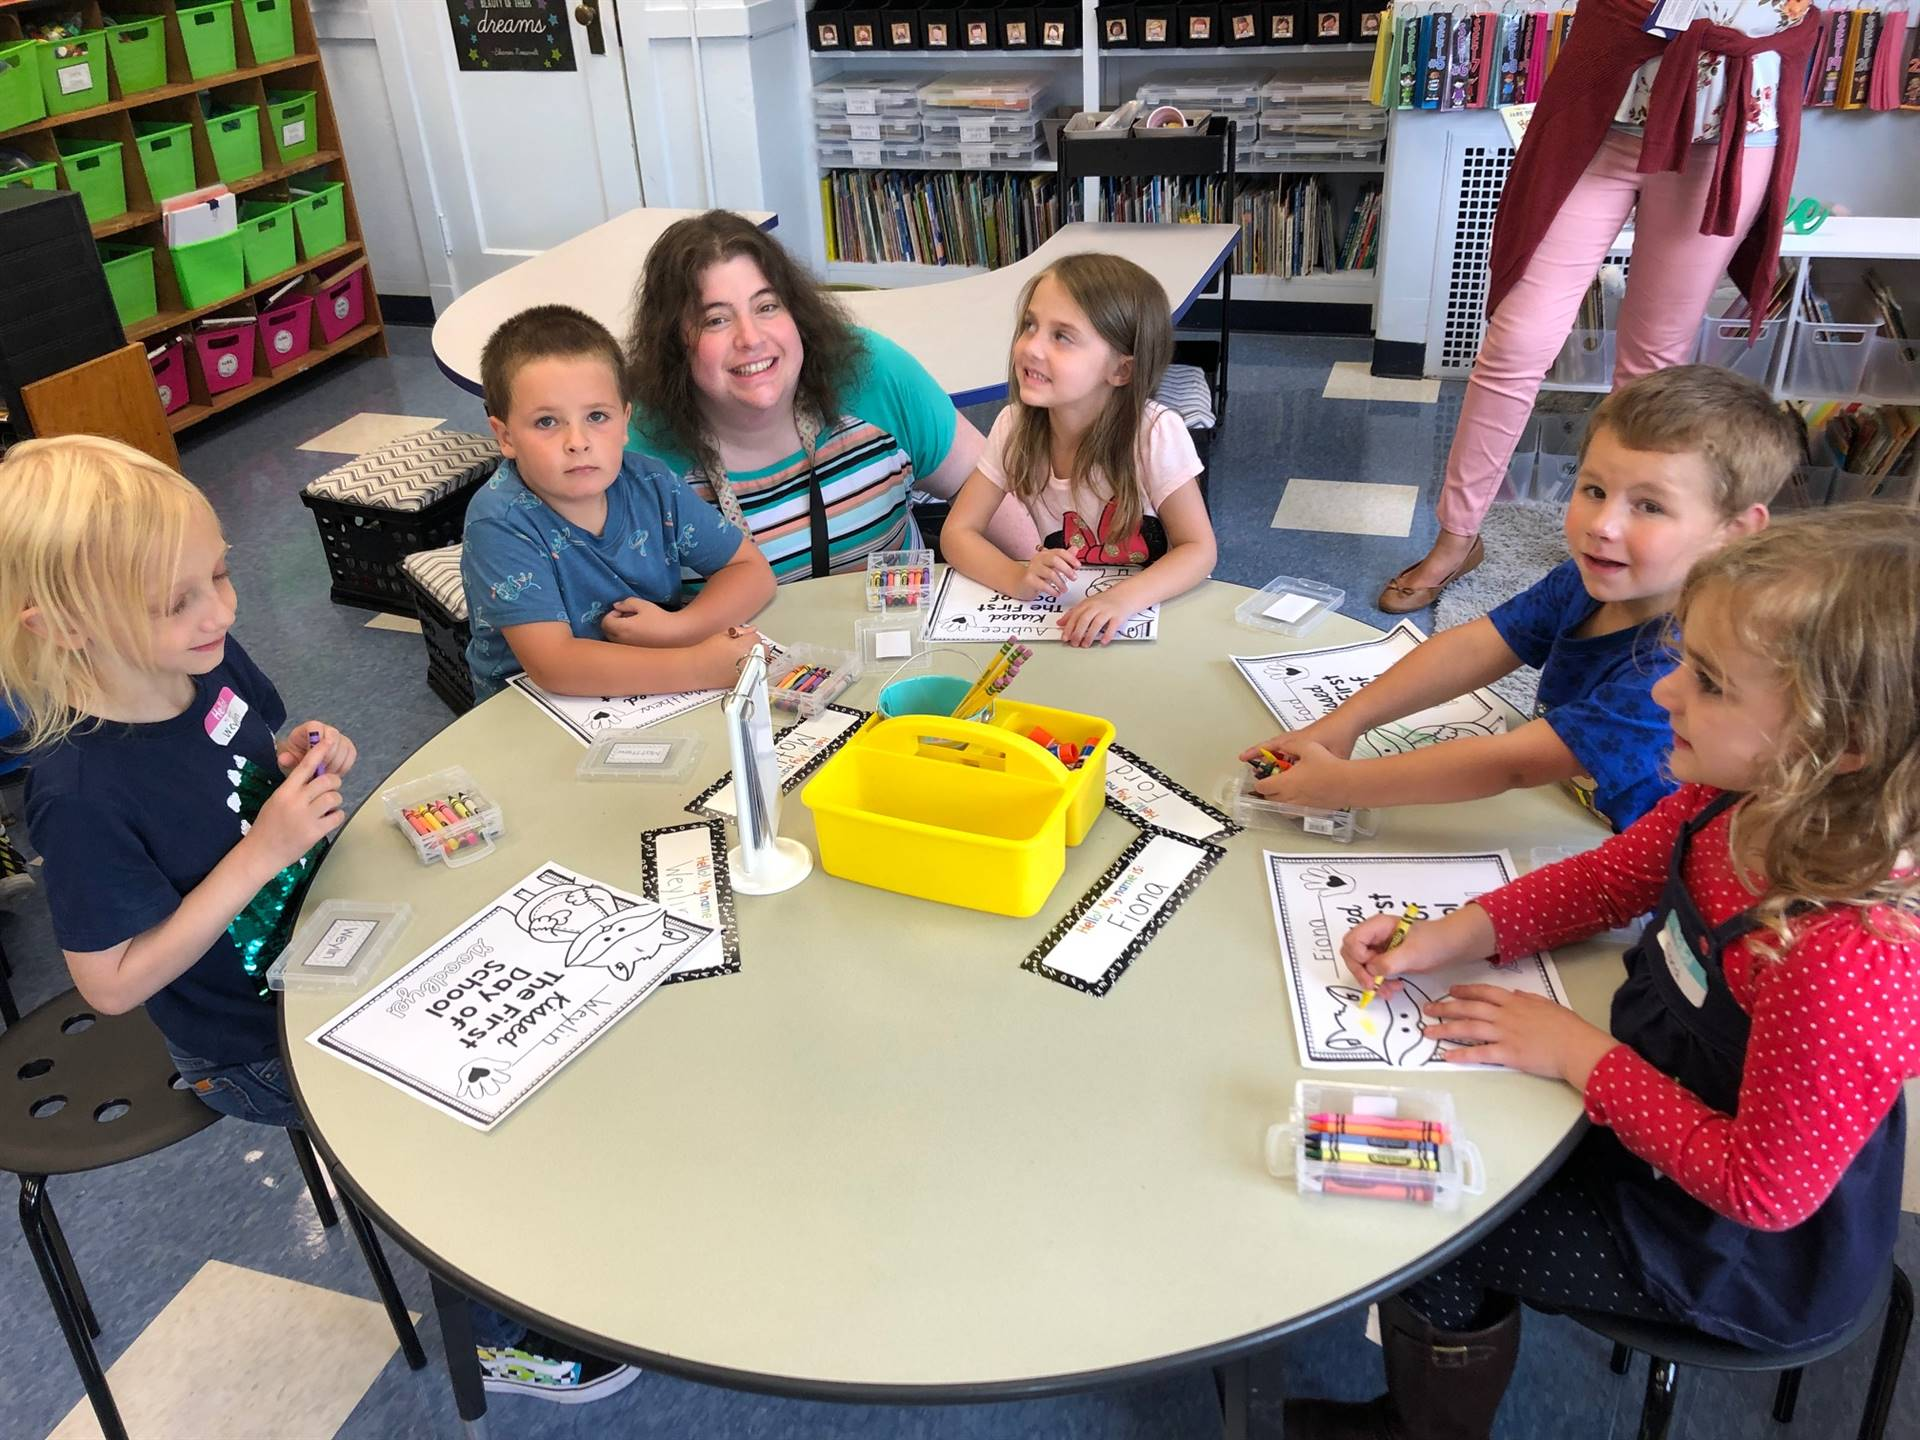 A teacher works with students at a table.